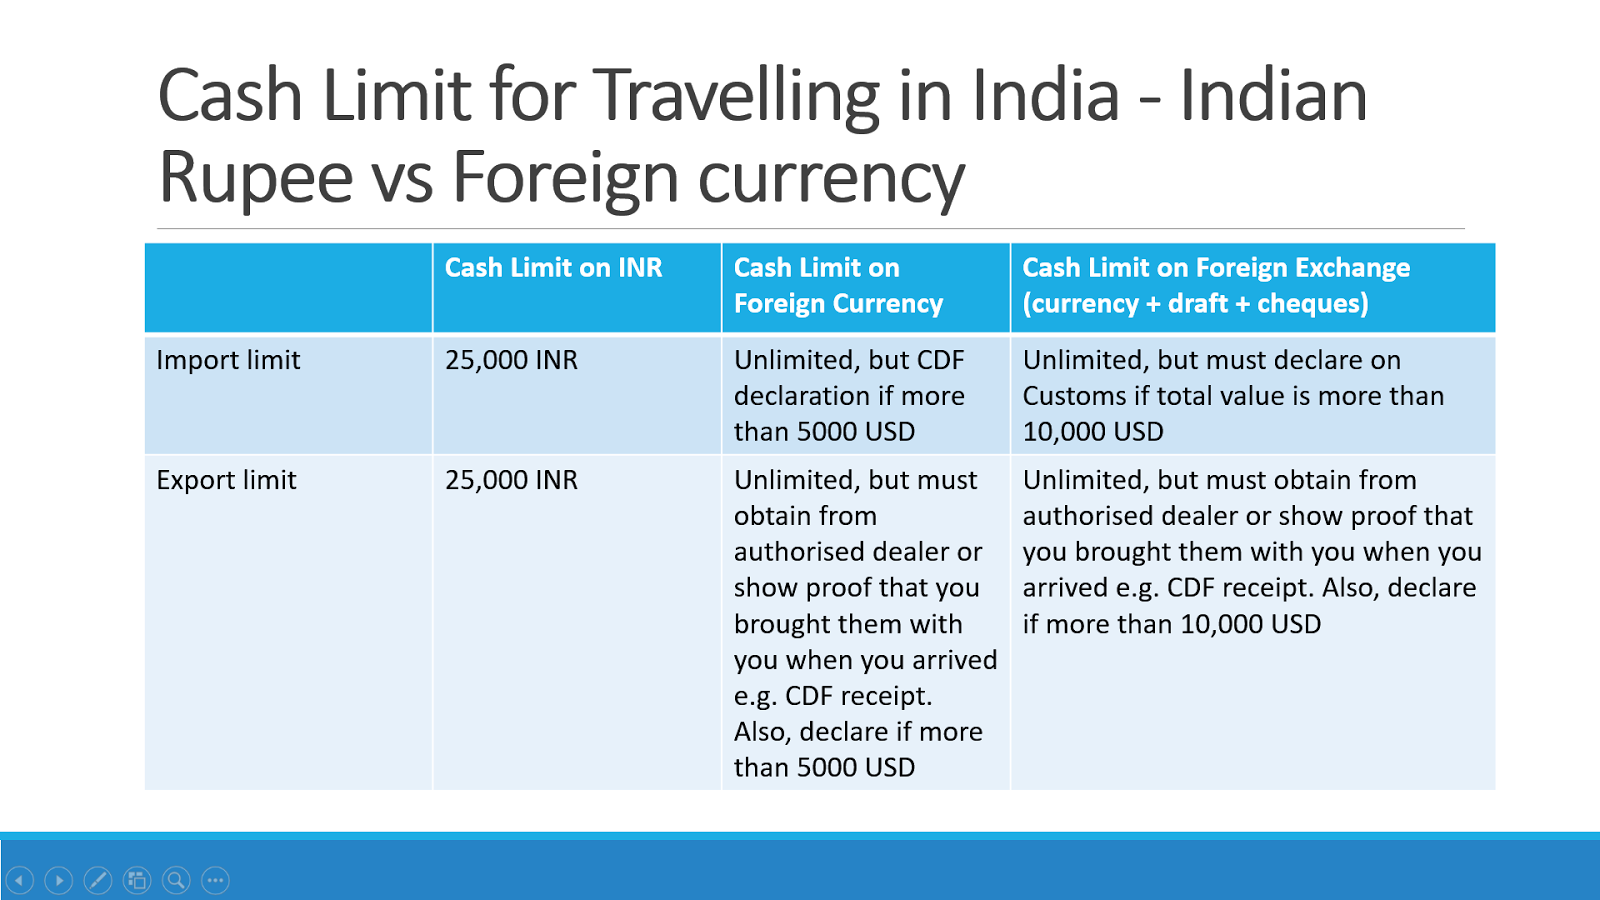 Indian Customs Limits for Carrying Cash to/from India - Indian Rupee